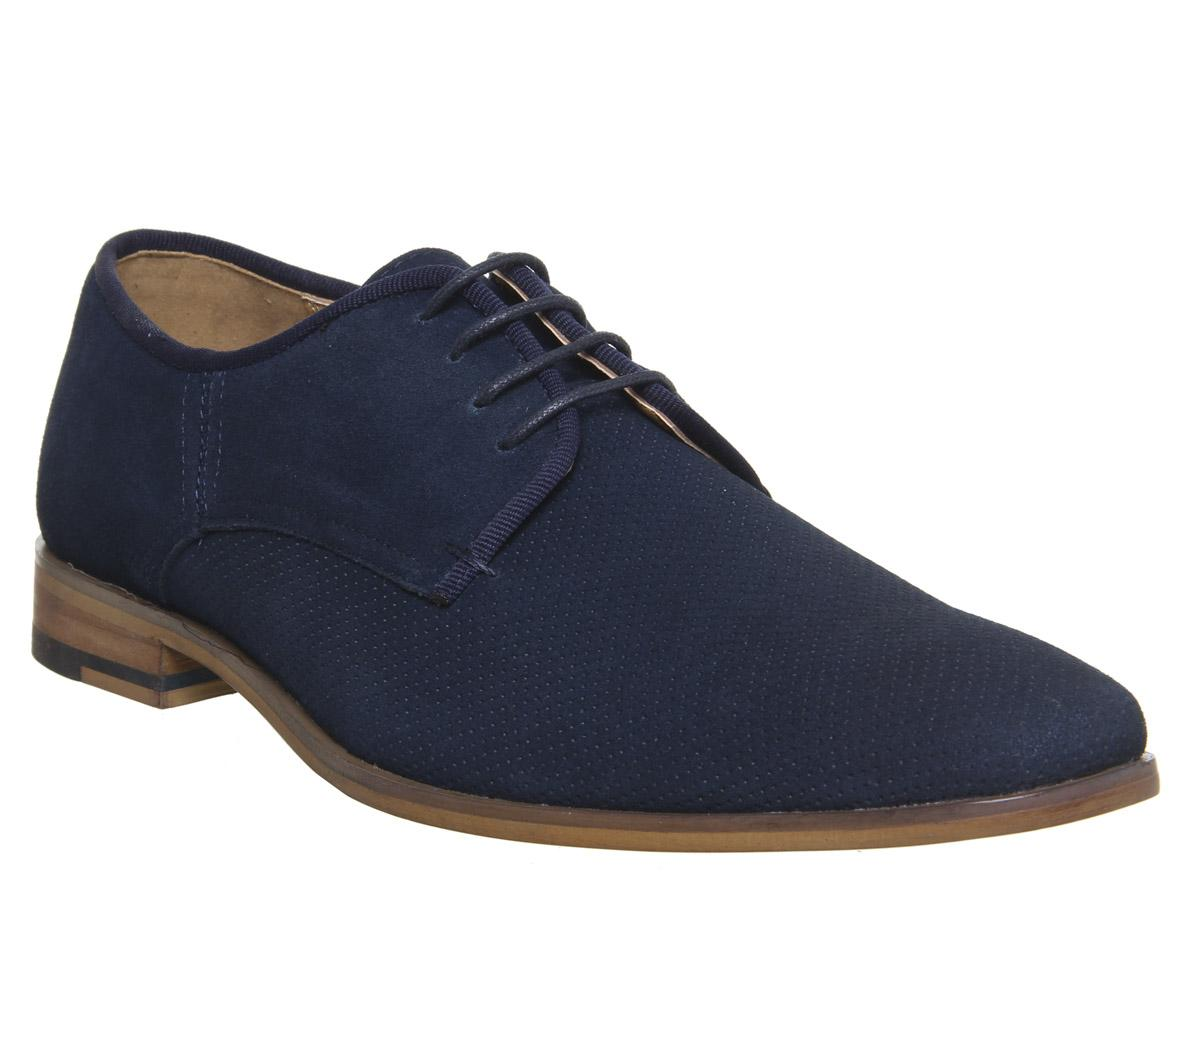 Idolise Perf Derby Shoes